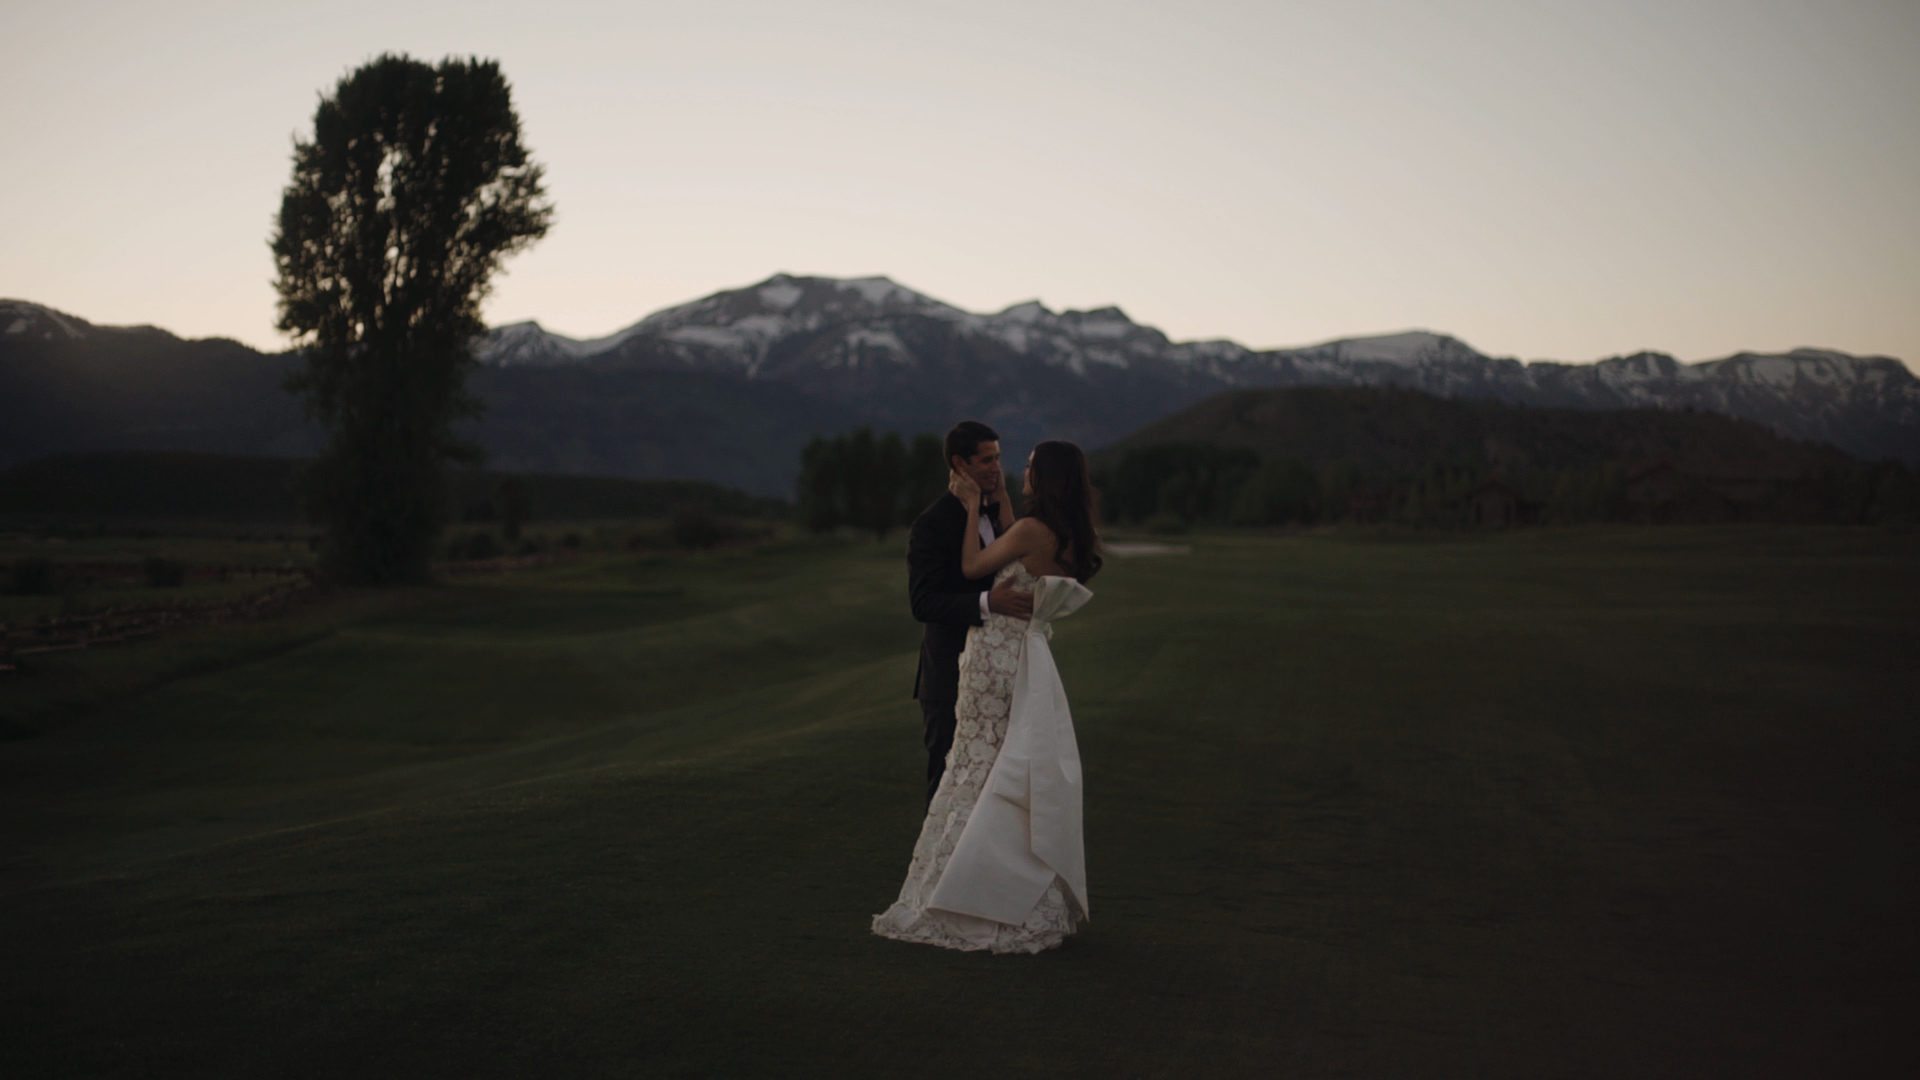 Mackenzie + Brantley | Jackson, Wyoming | 3 Creek Ranch